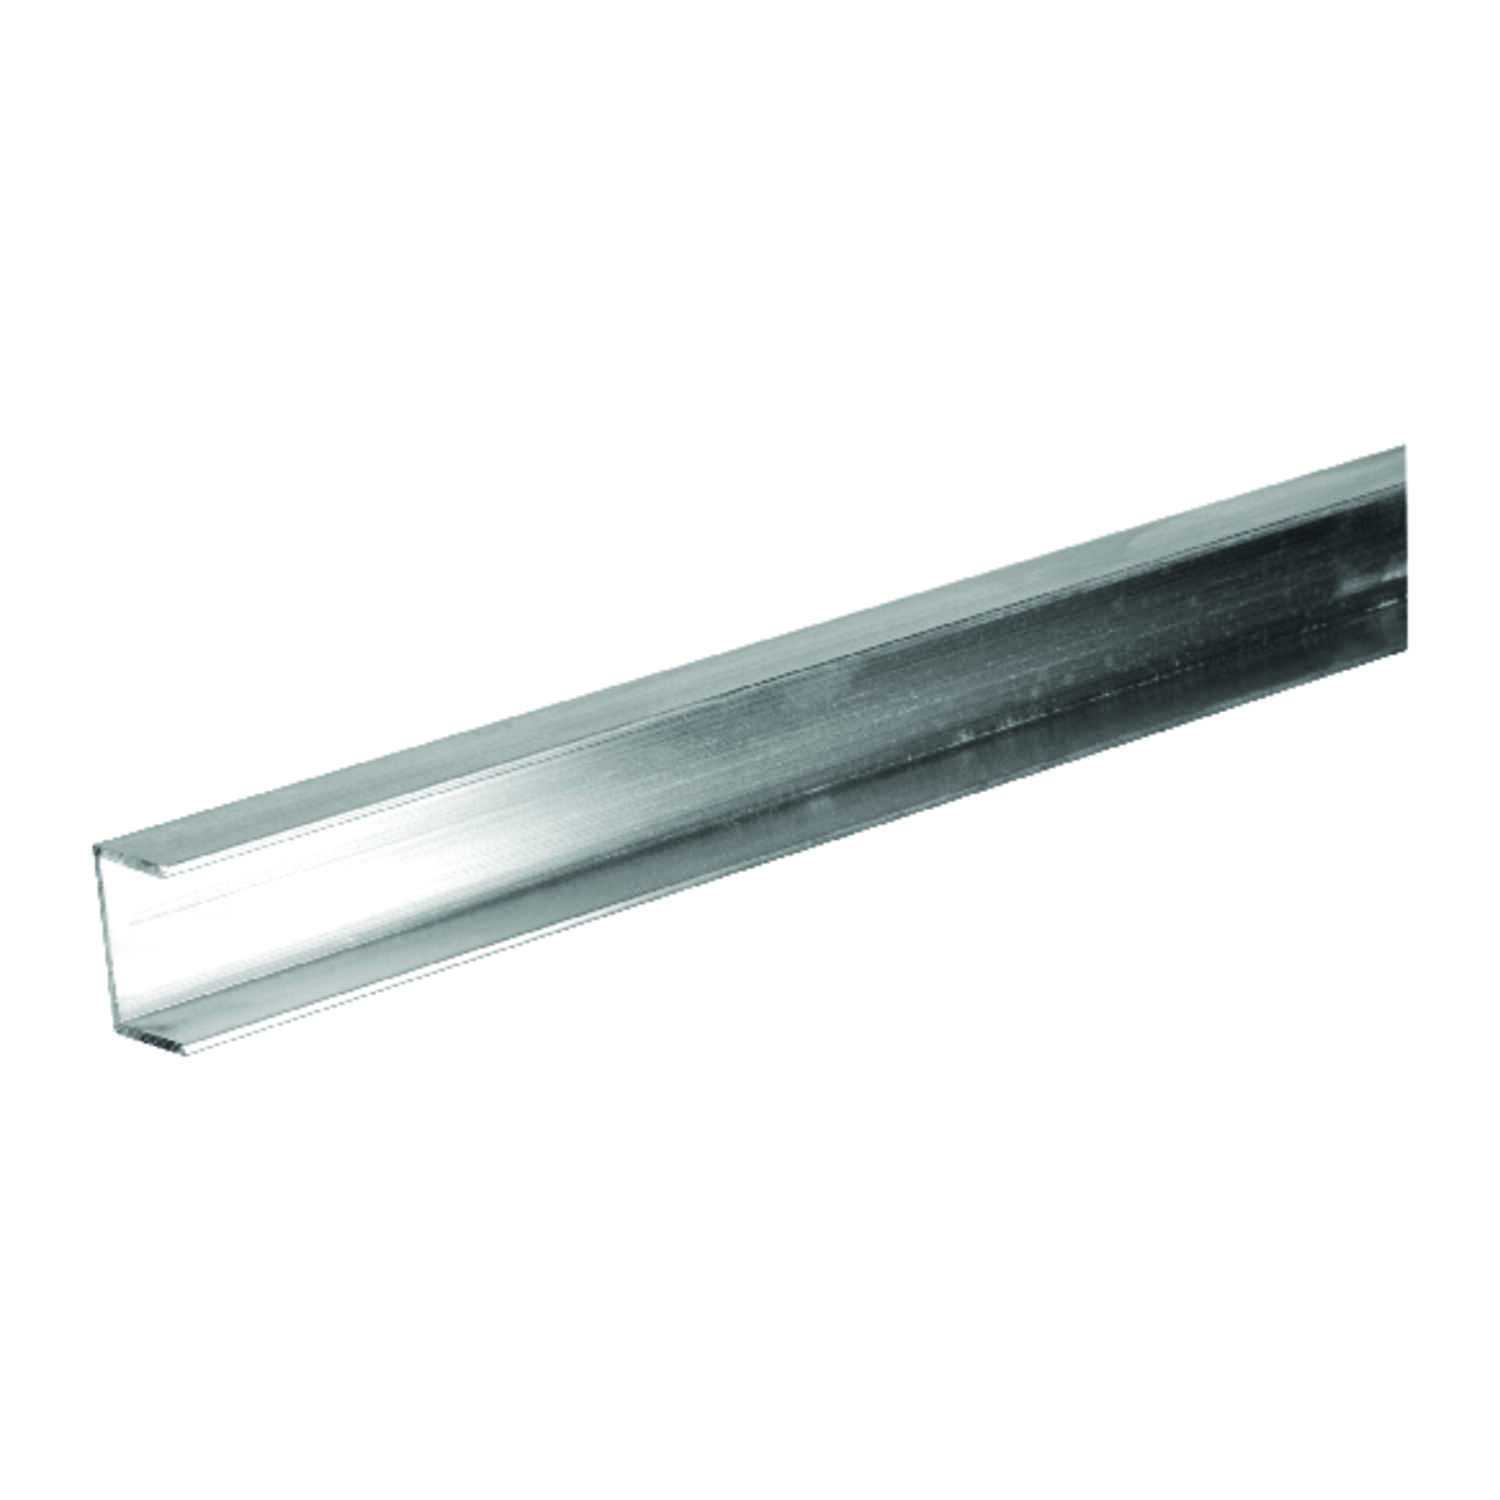 Boltmaster  0.0625 in.  x 1/4 in. W x 4 ft. L Mill  Aluminum  U Channel